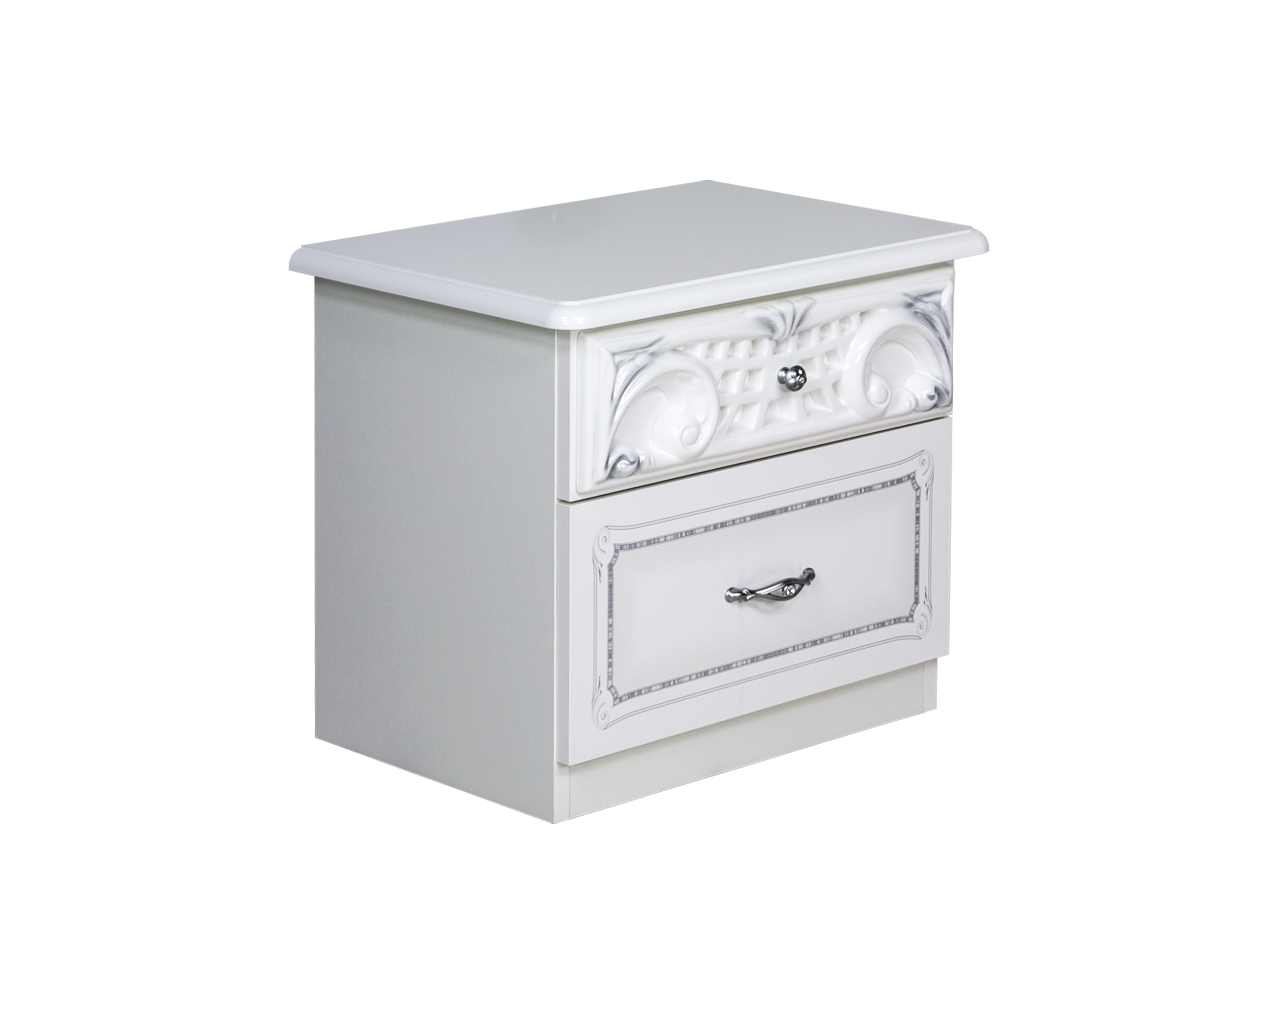 Barock Nachtkommode Remo-Bianco in Weiss/Silber HG Lack